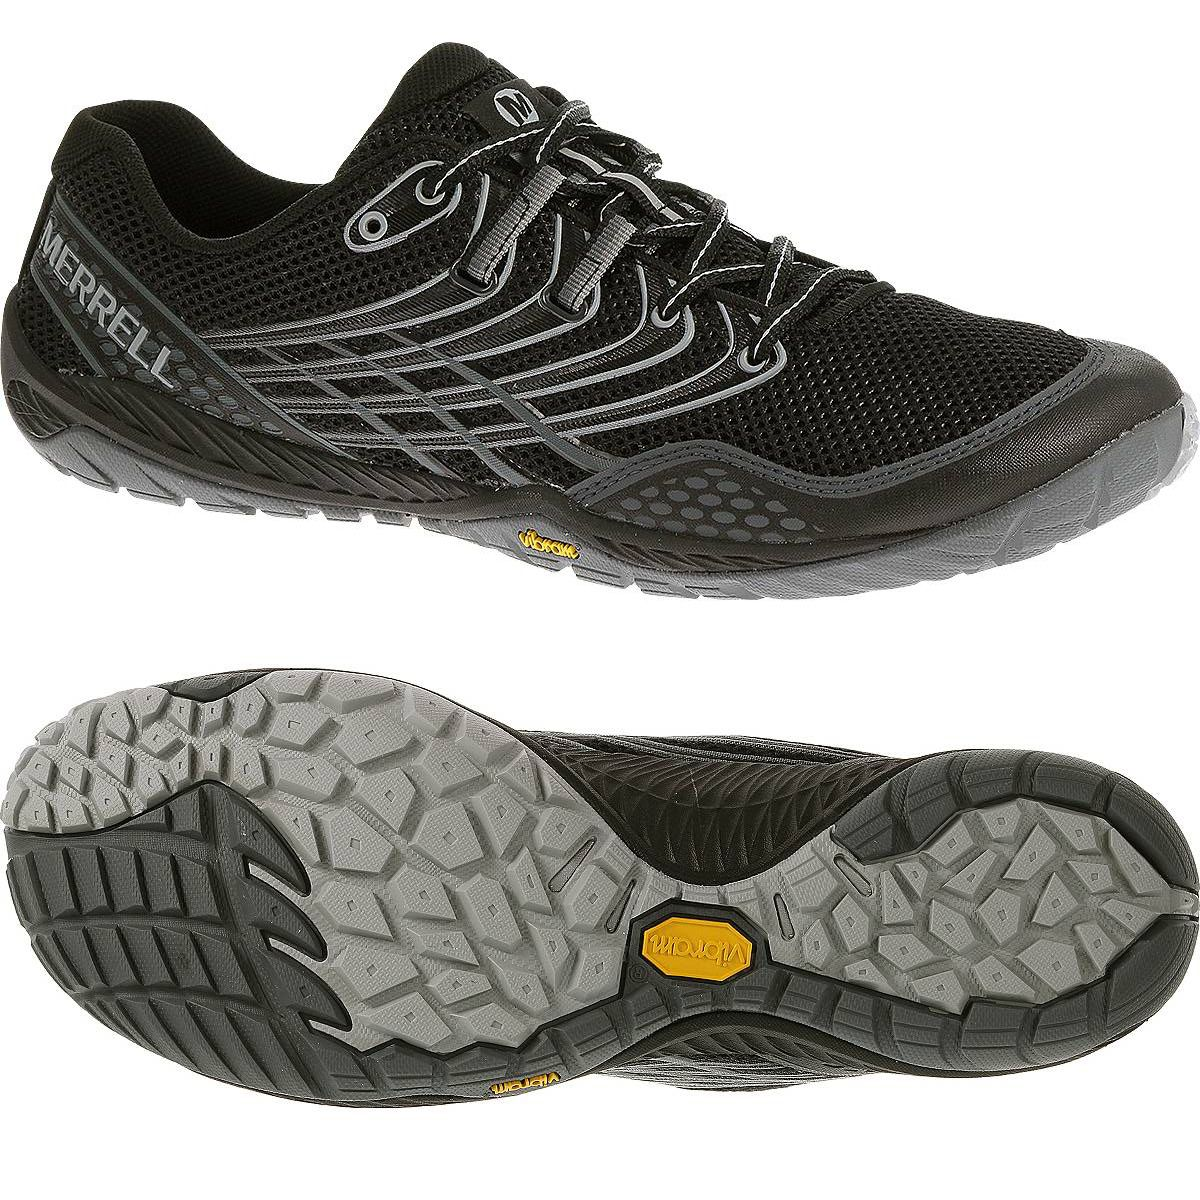 Merrell Trail Running Shoes Sale